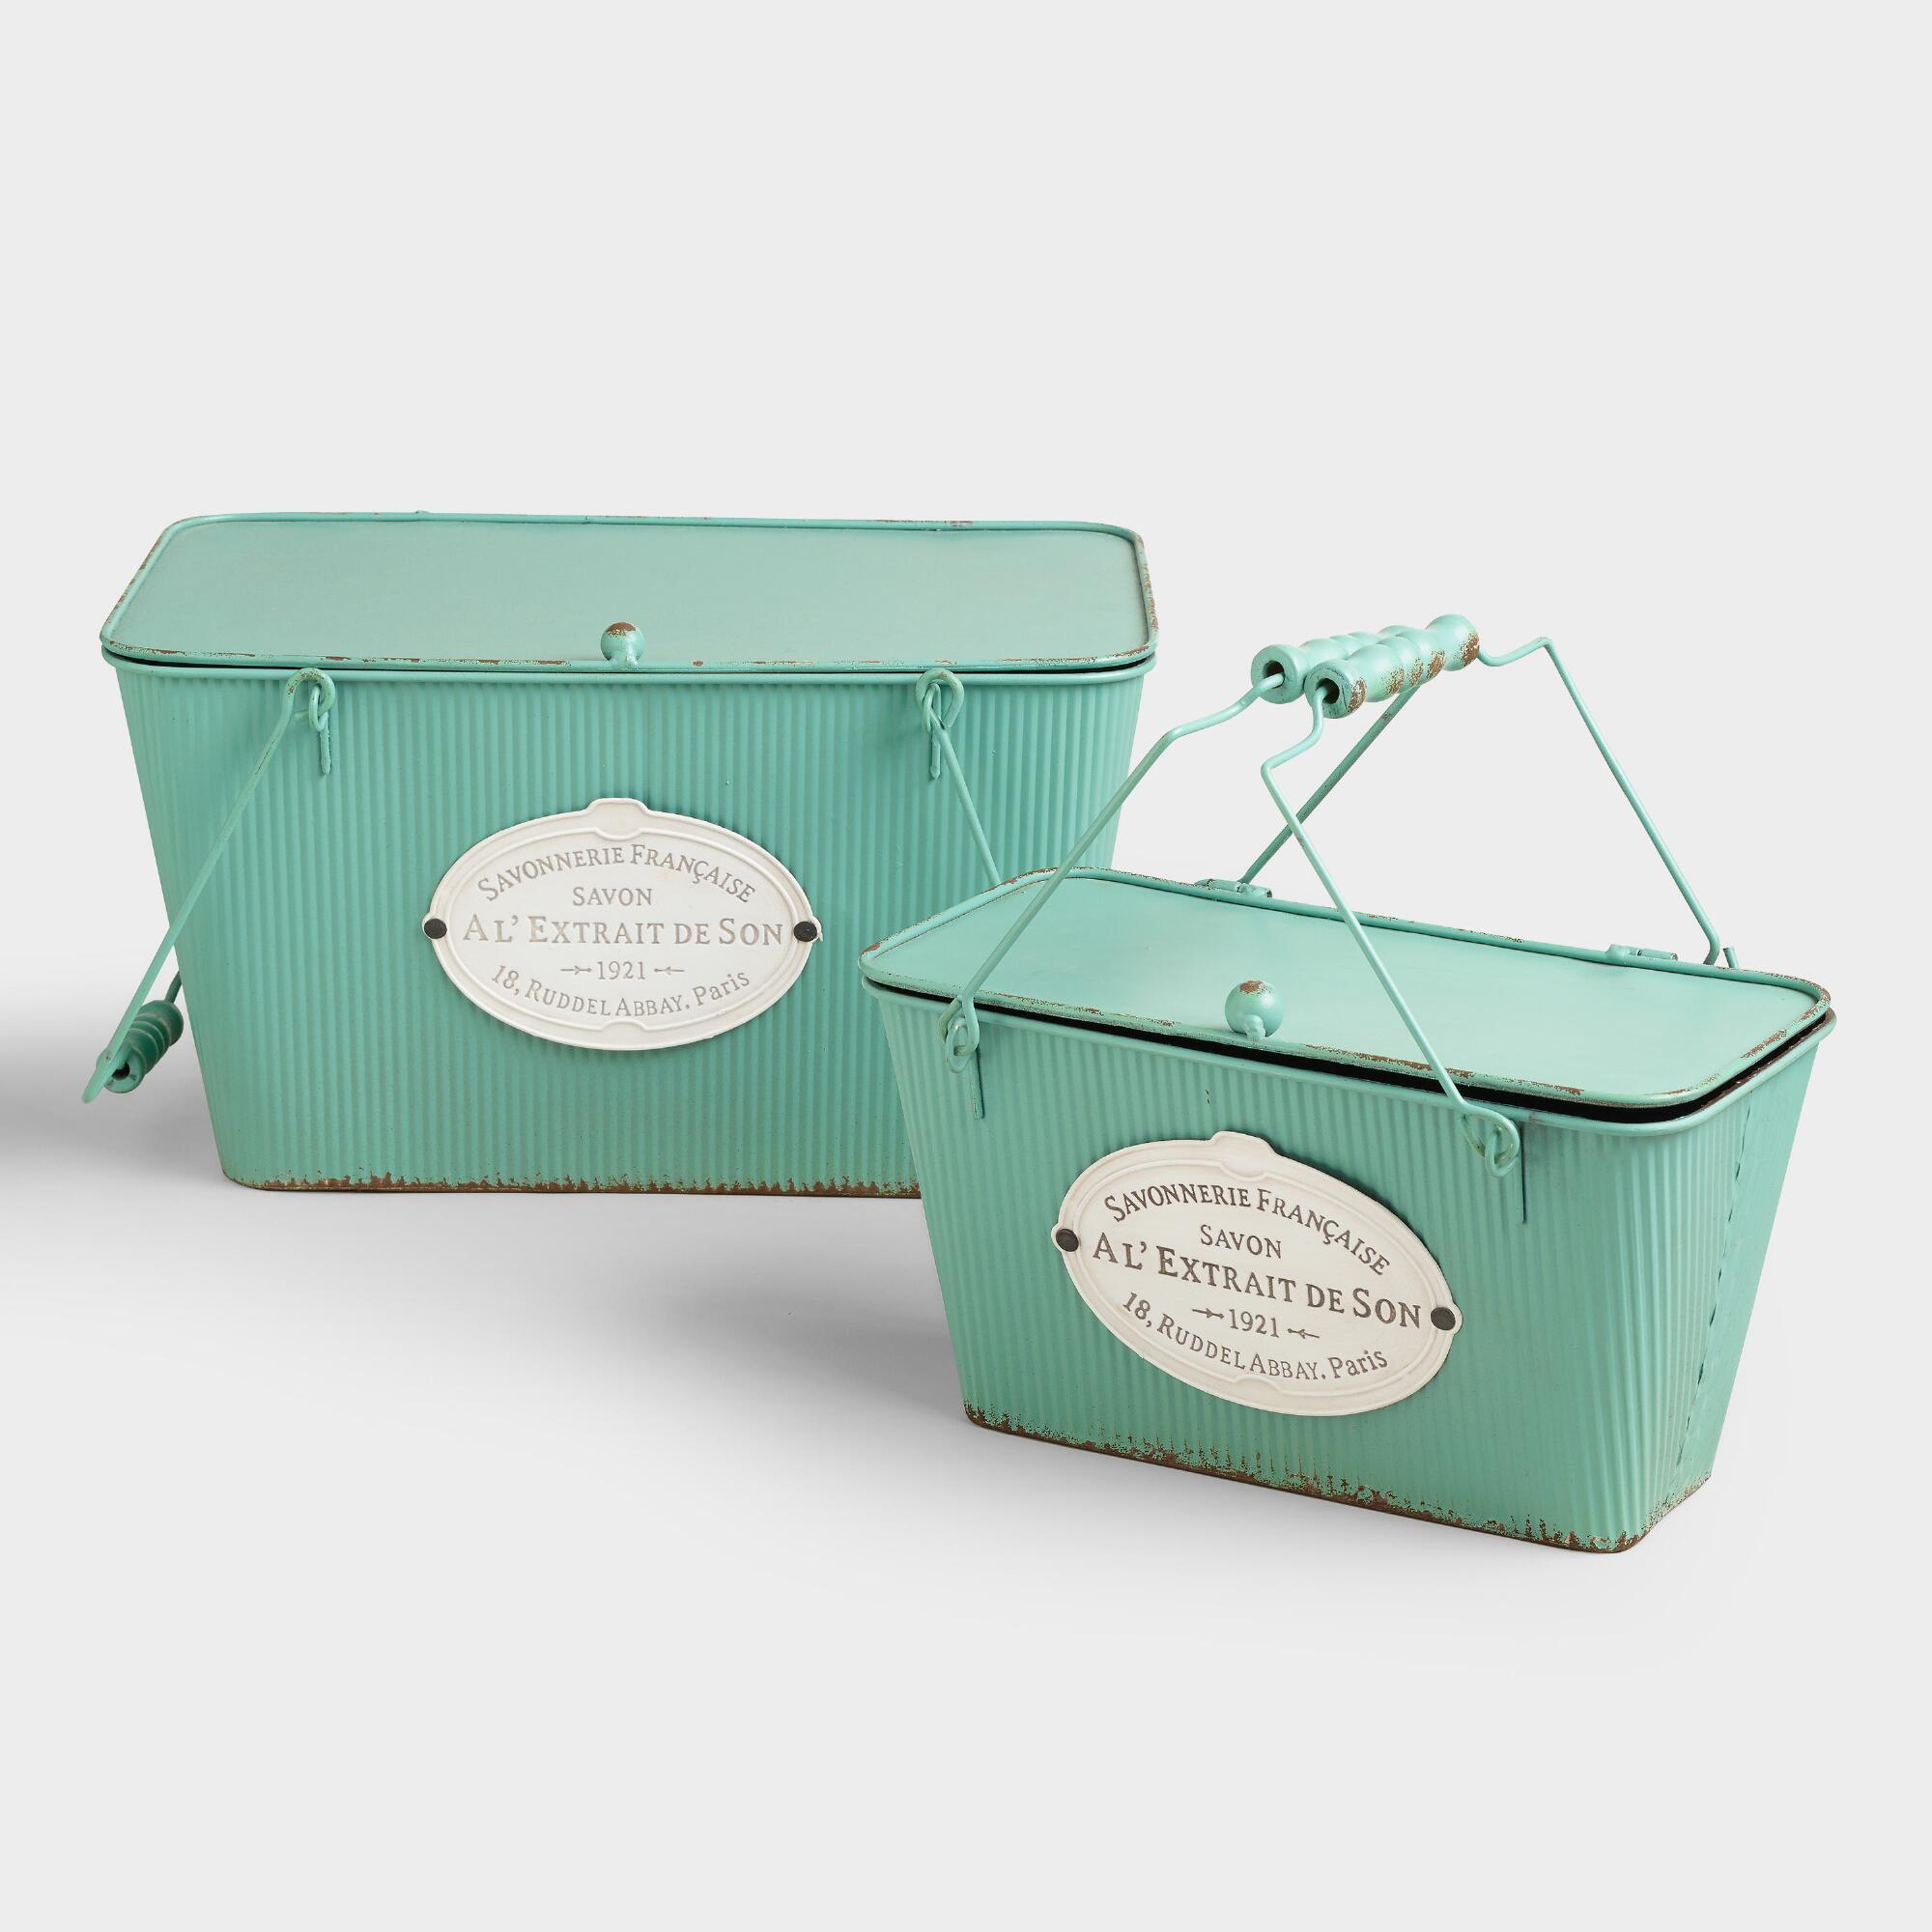 decorative for luxuries boxes two with shagreen faux decor lids appointed of home the house set well green